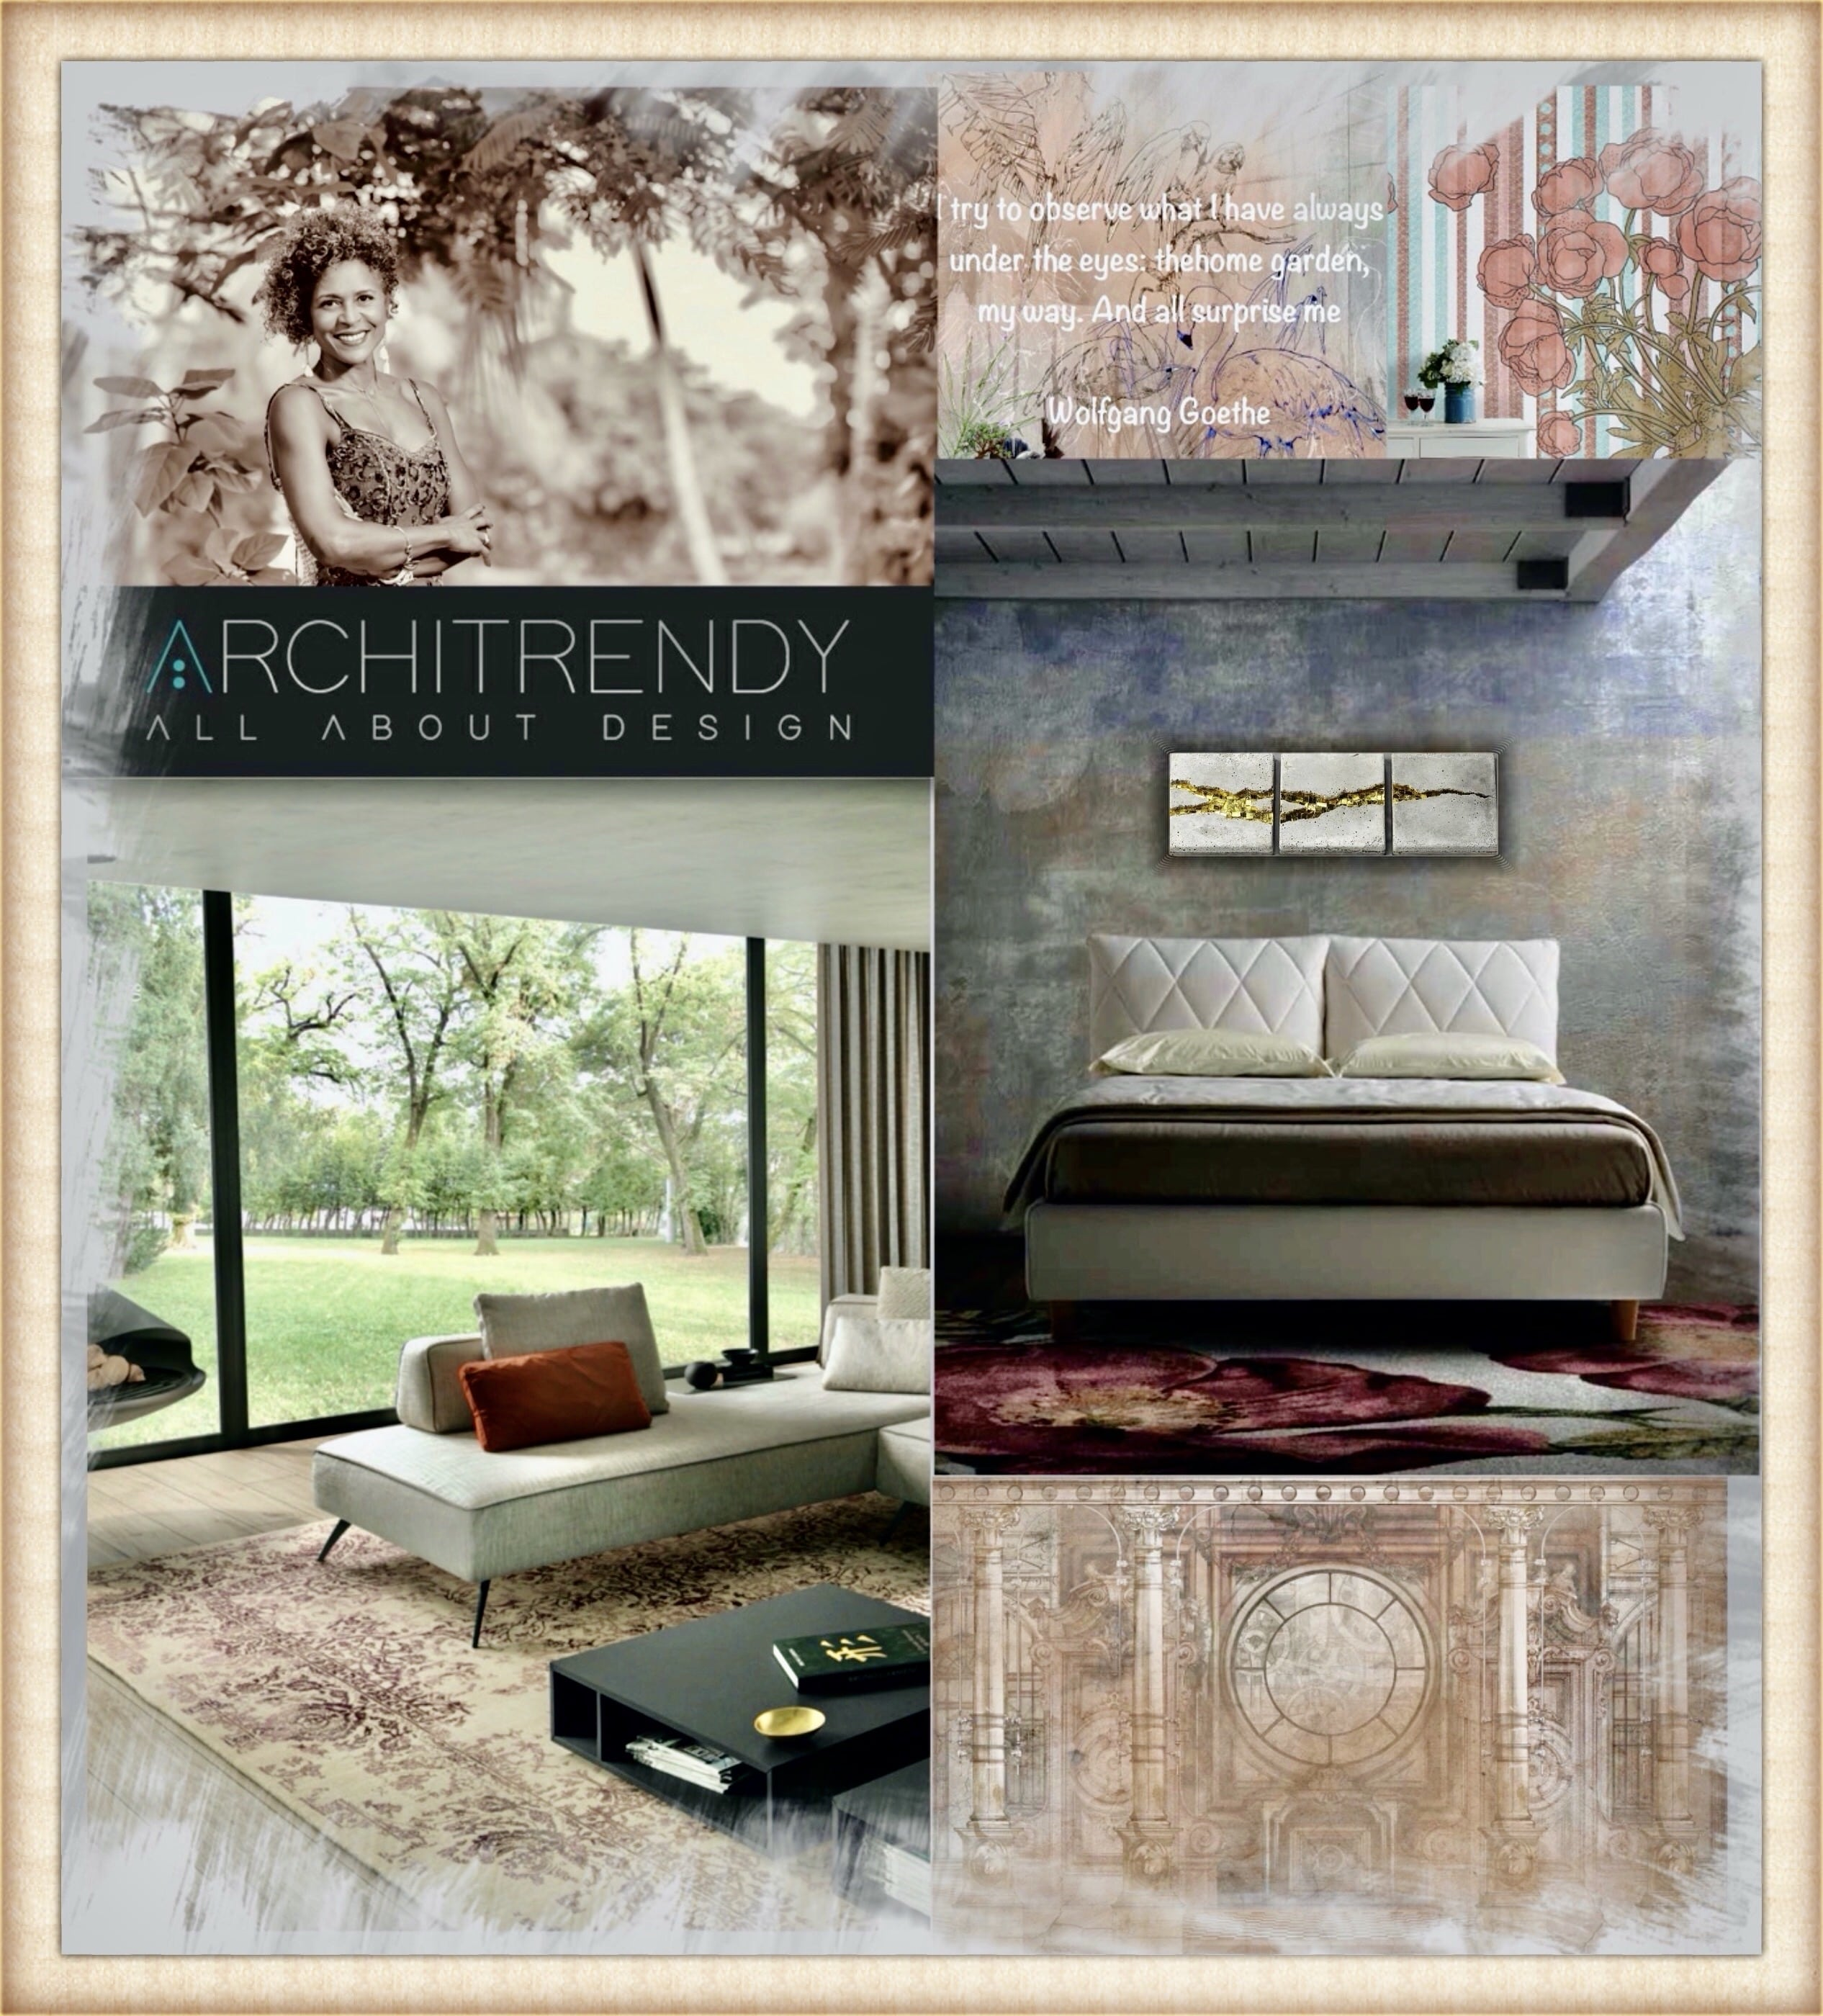 ArchitrendySmartLiving